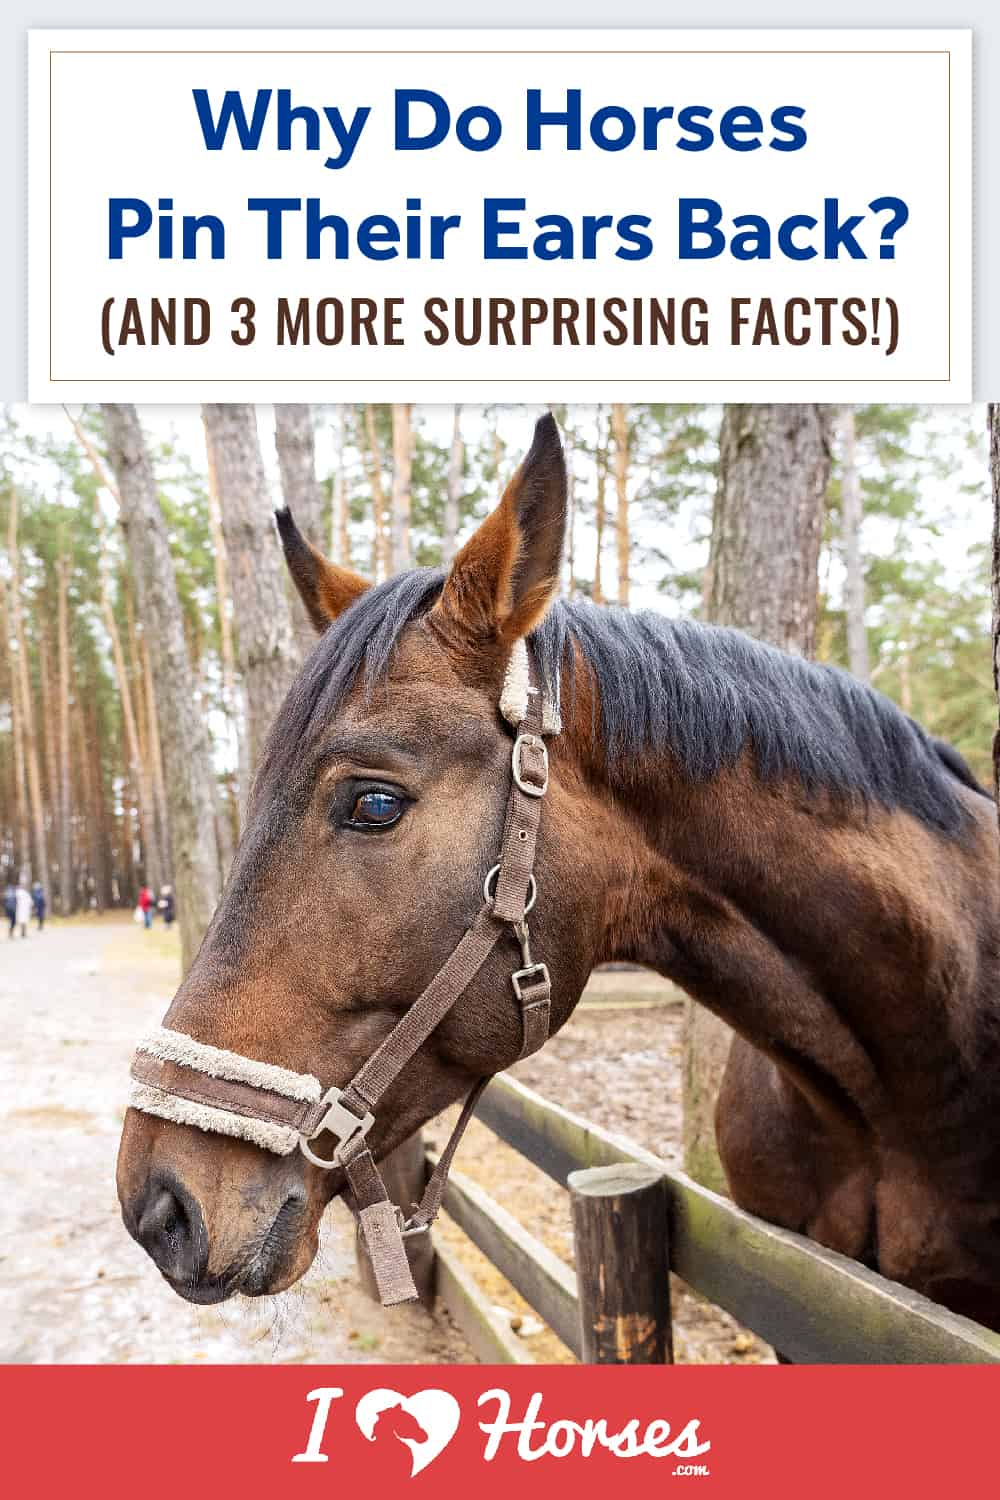 How To Read Your Horse's Ears